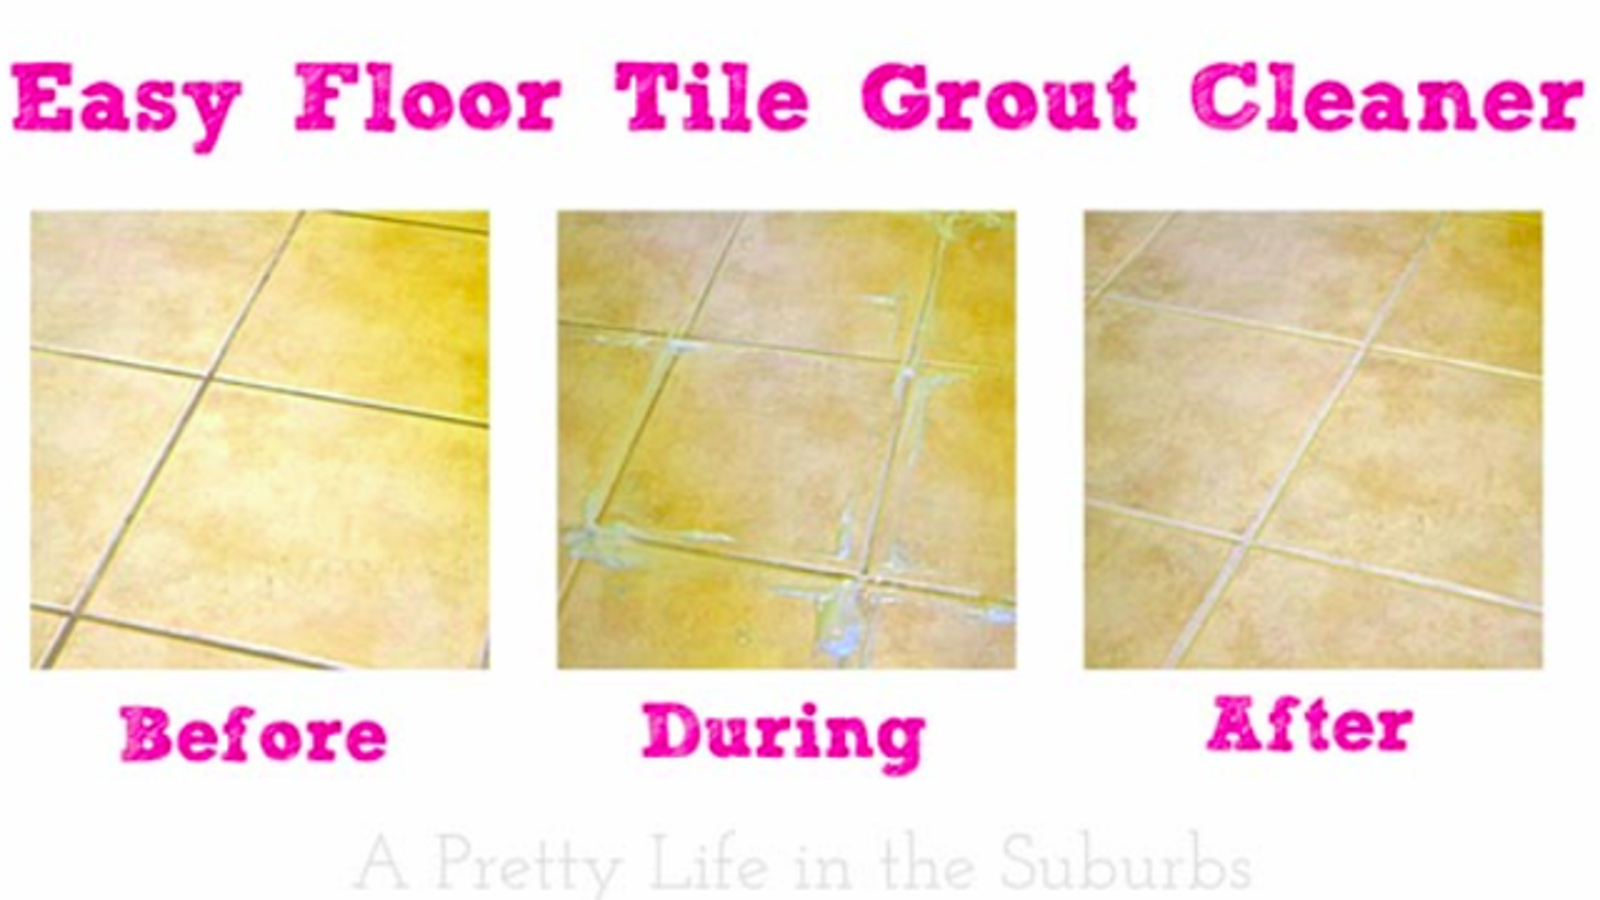 DIY Tile Grout Cleaner Makes Grout Look Like New With Less Scrubbing - Best method to clean tile grout